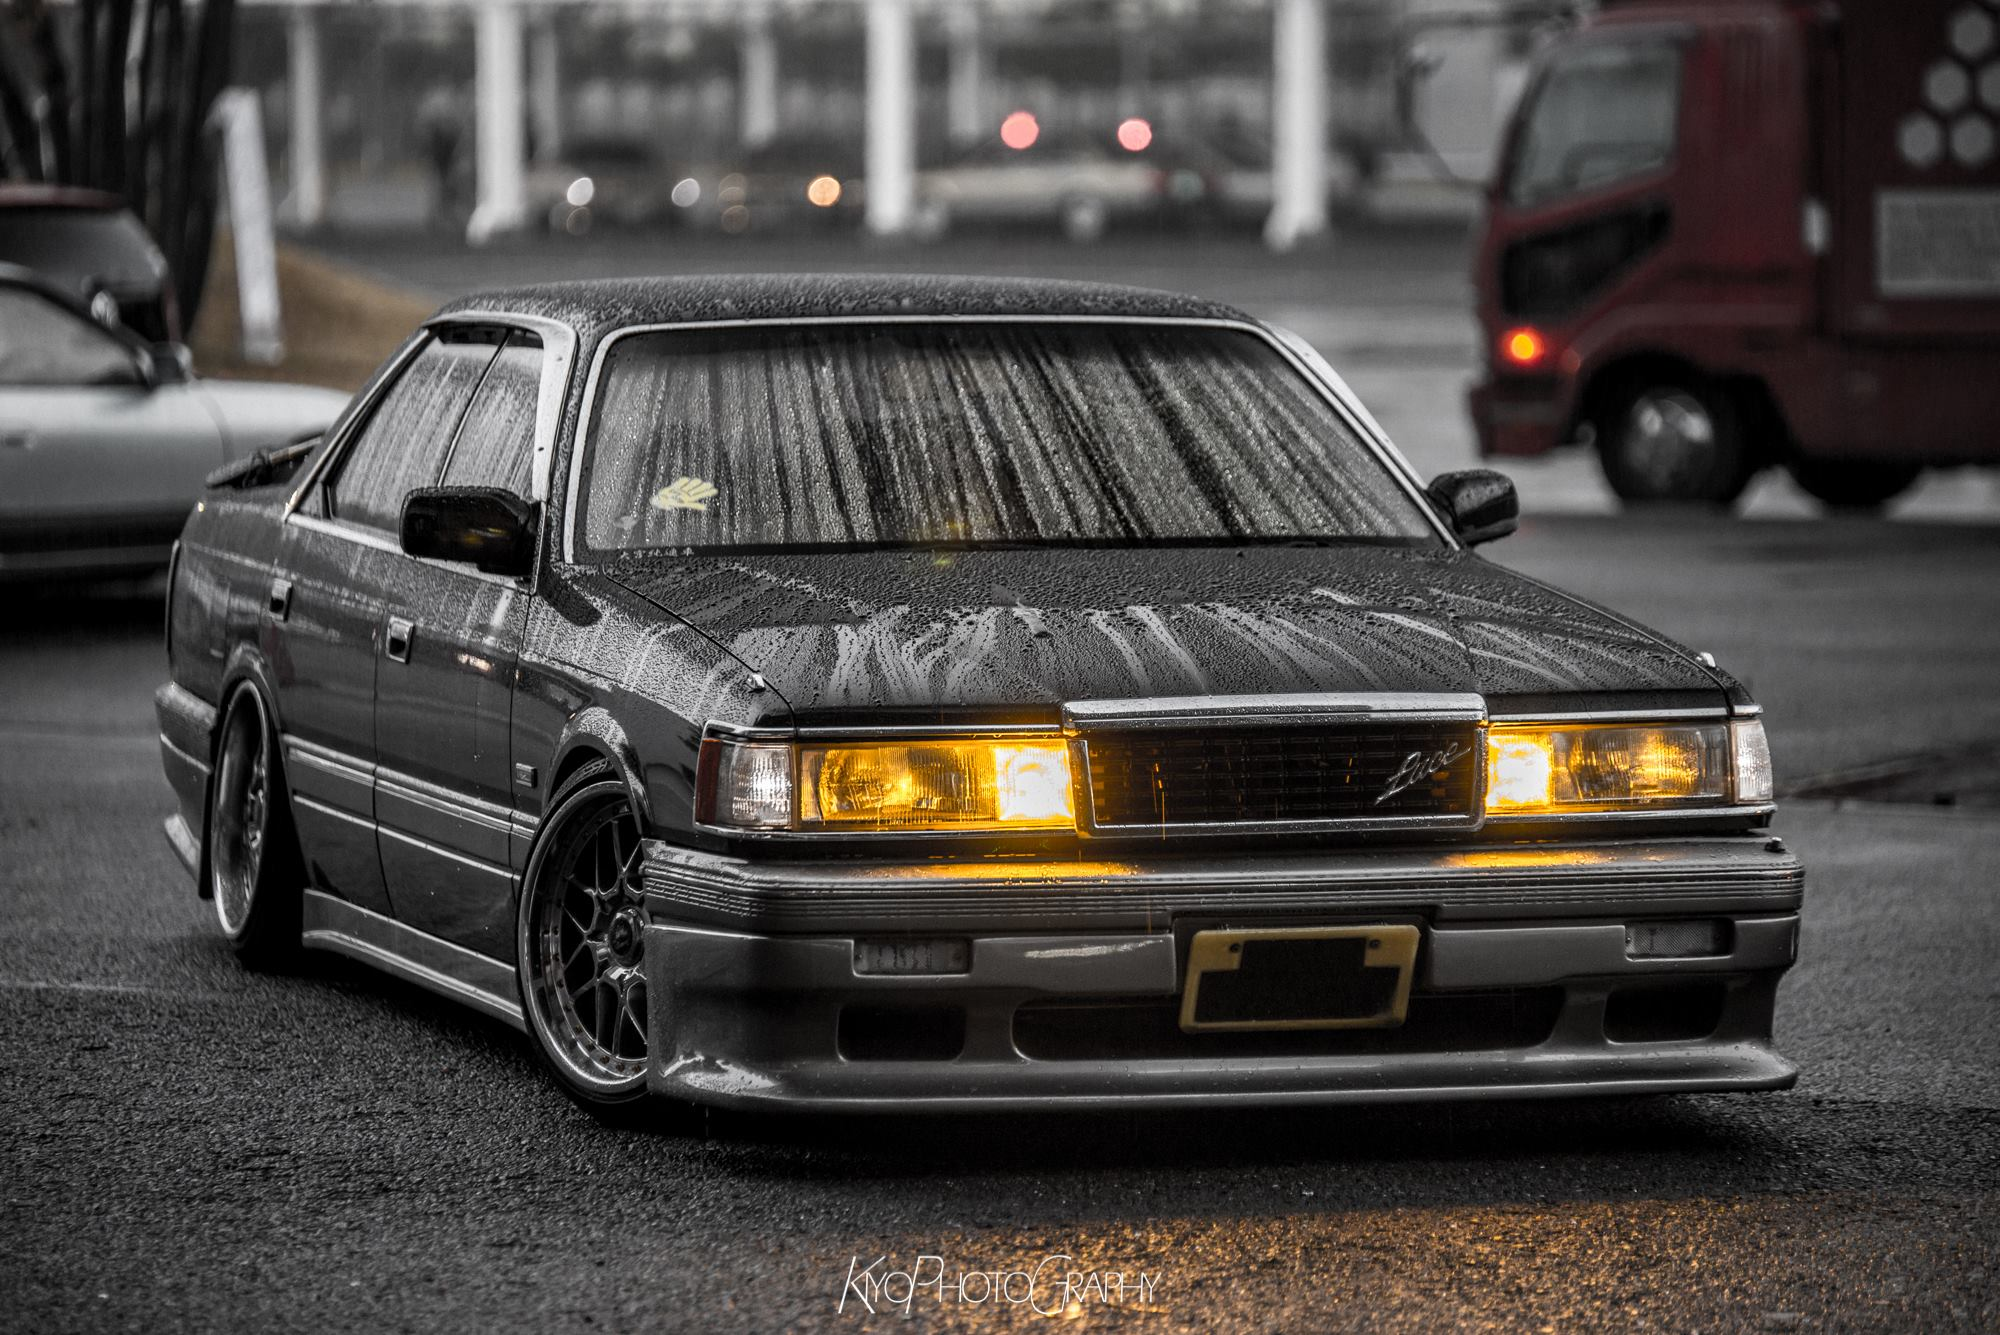 Mazda 929 Vip | www.pixshark.com - Images Galleries With A ...